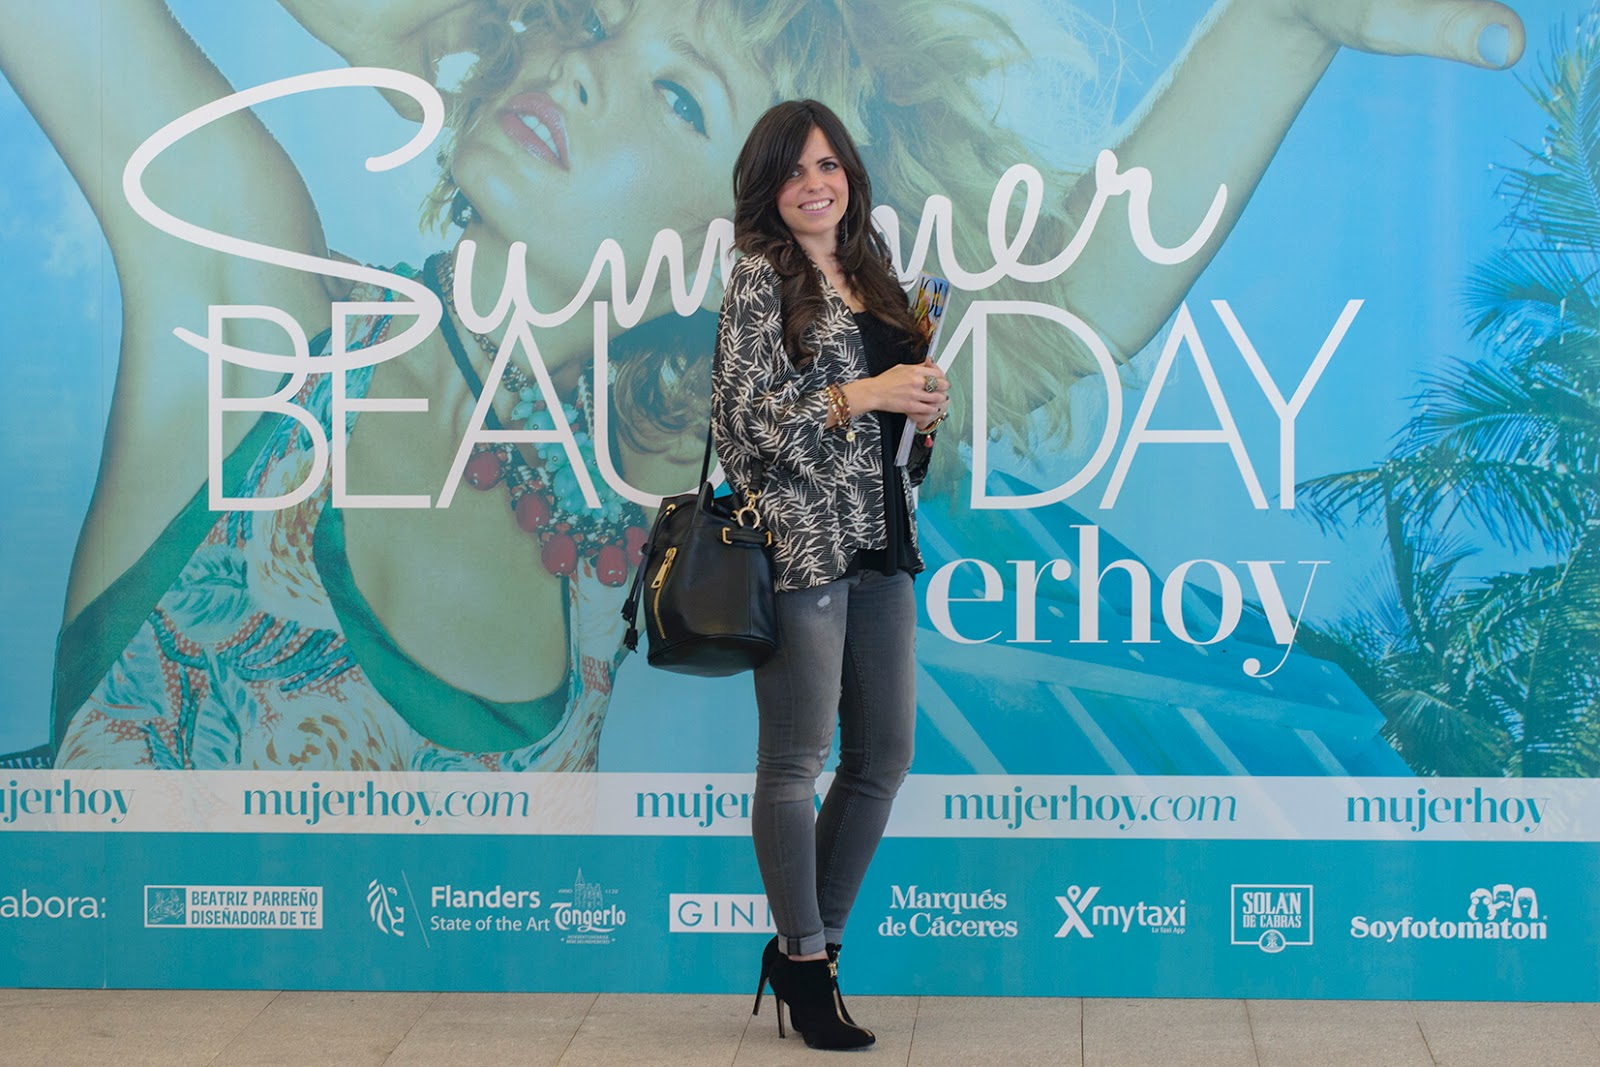 Summer Beauty Day de MujerHoy